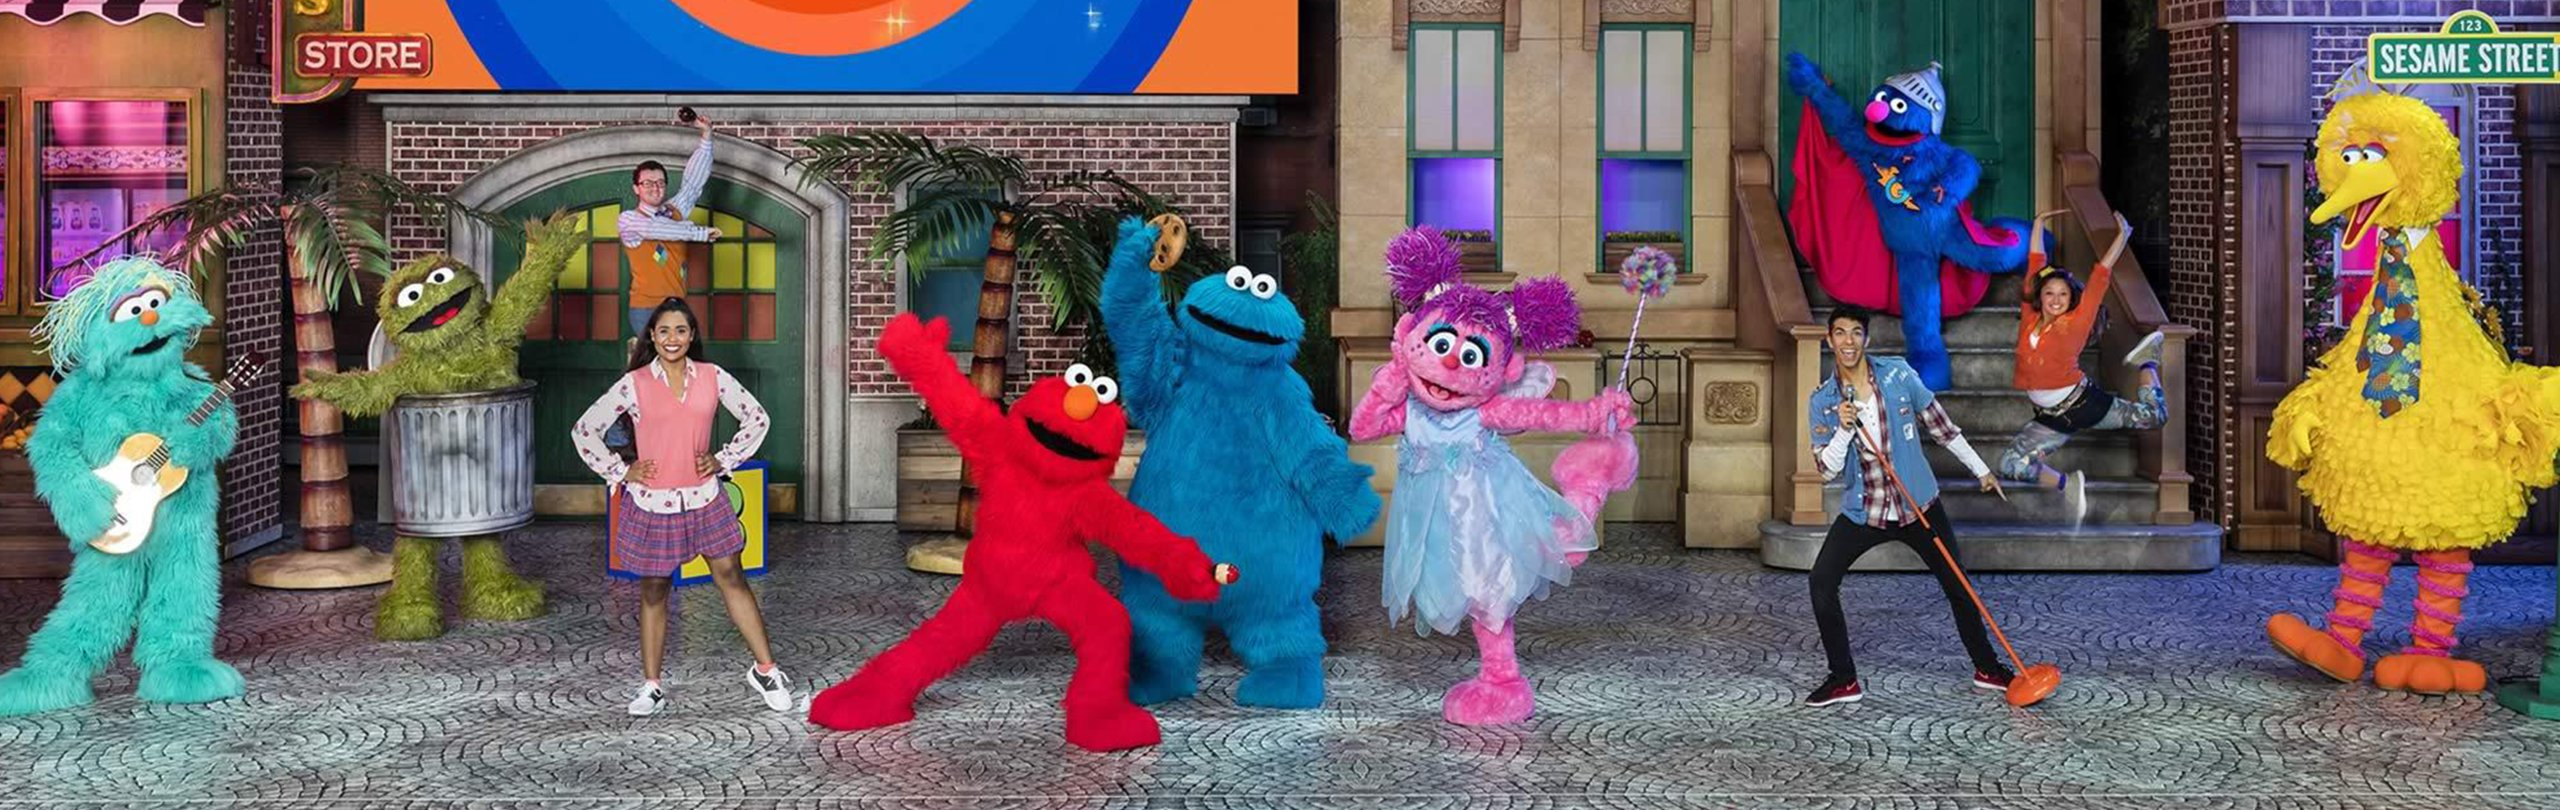 Sesame Street Muppets on stage dancing and posing with people